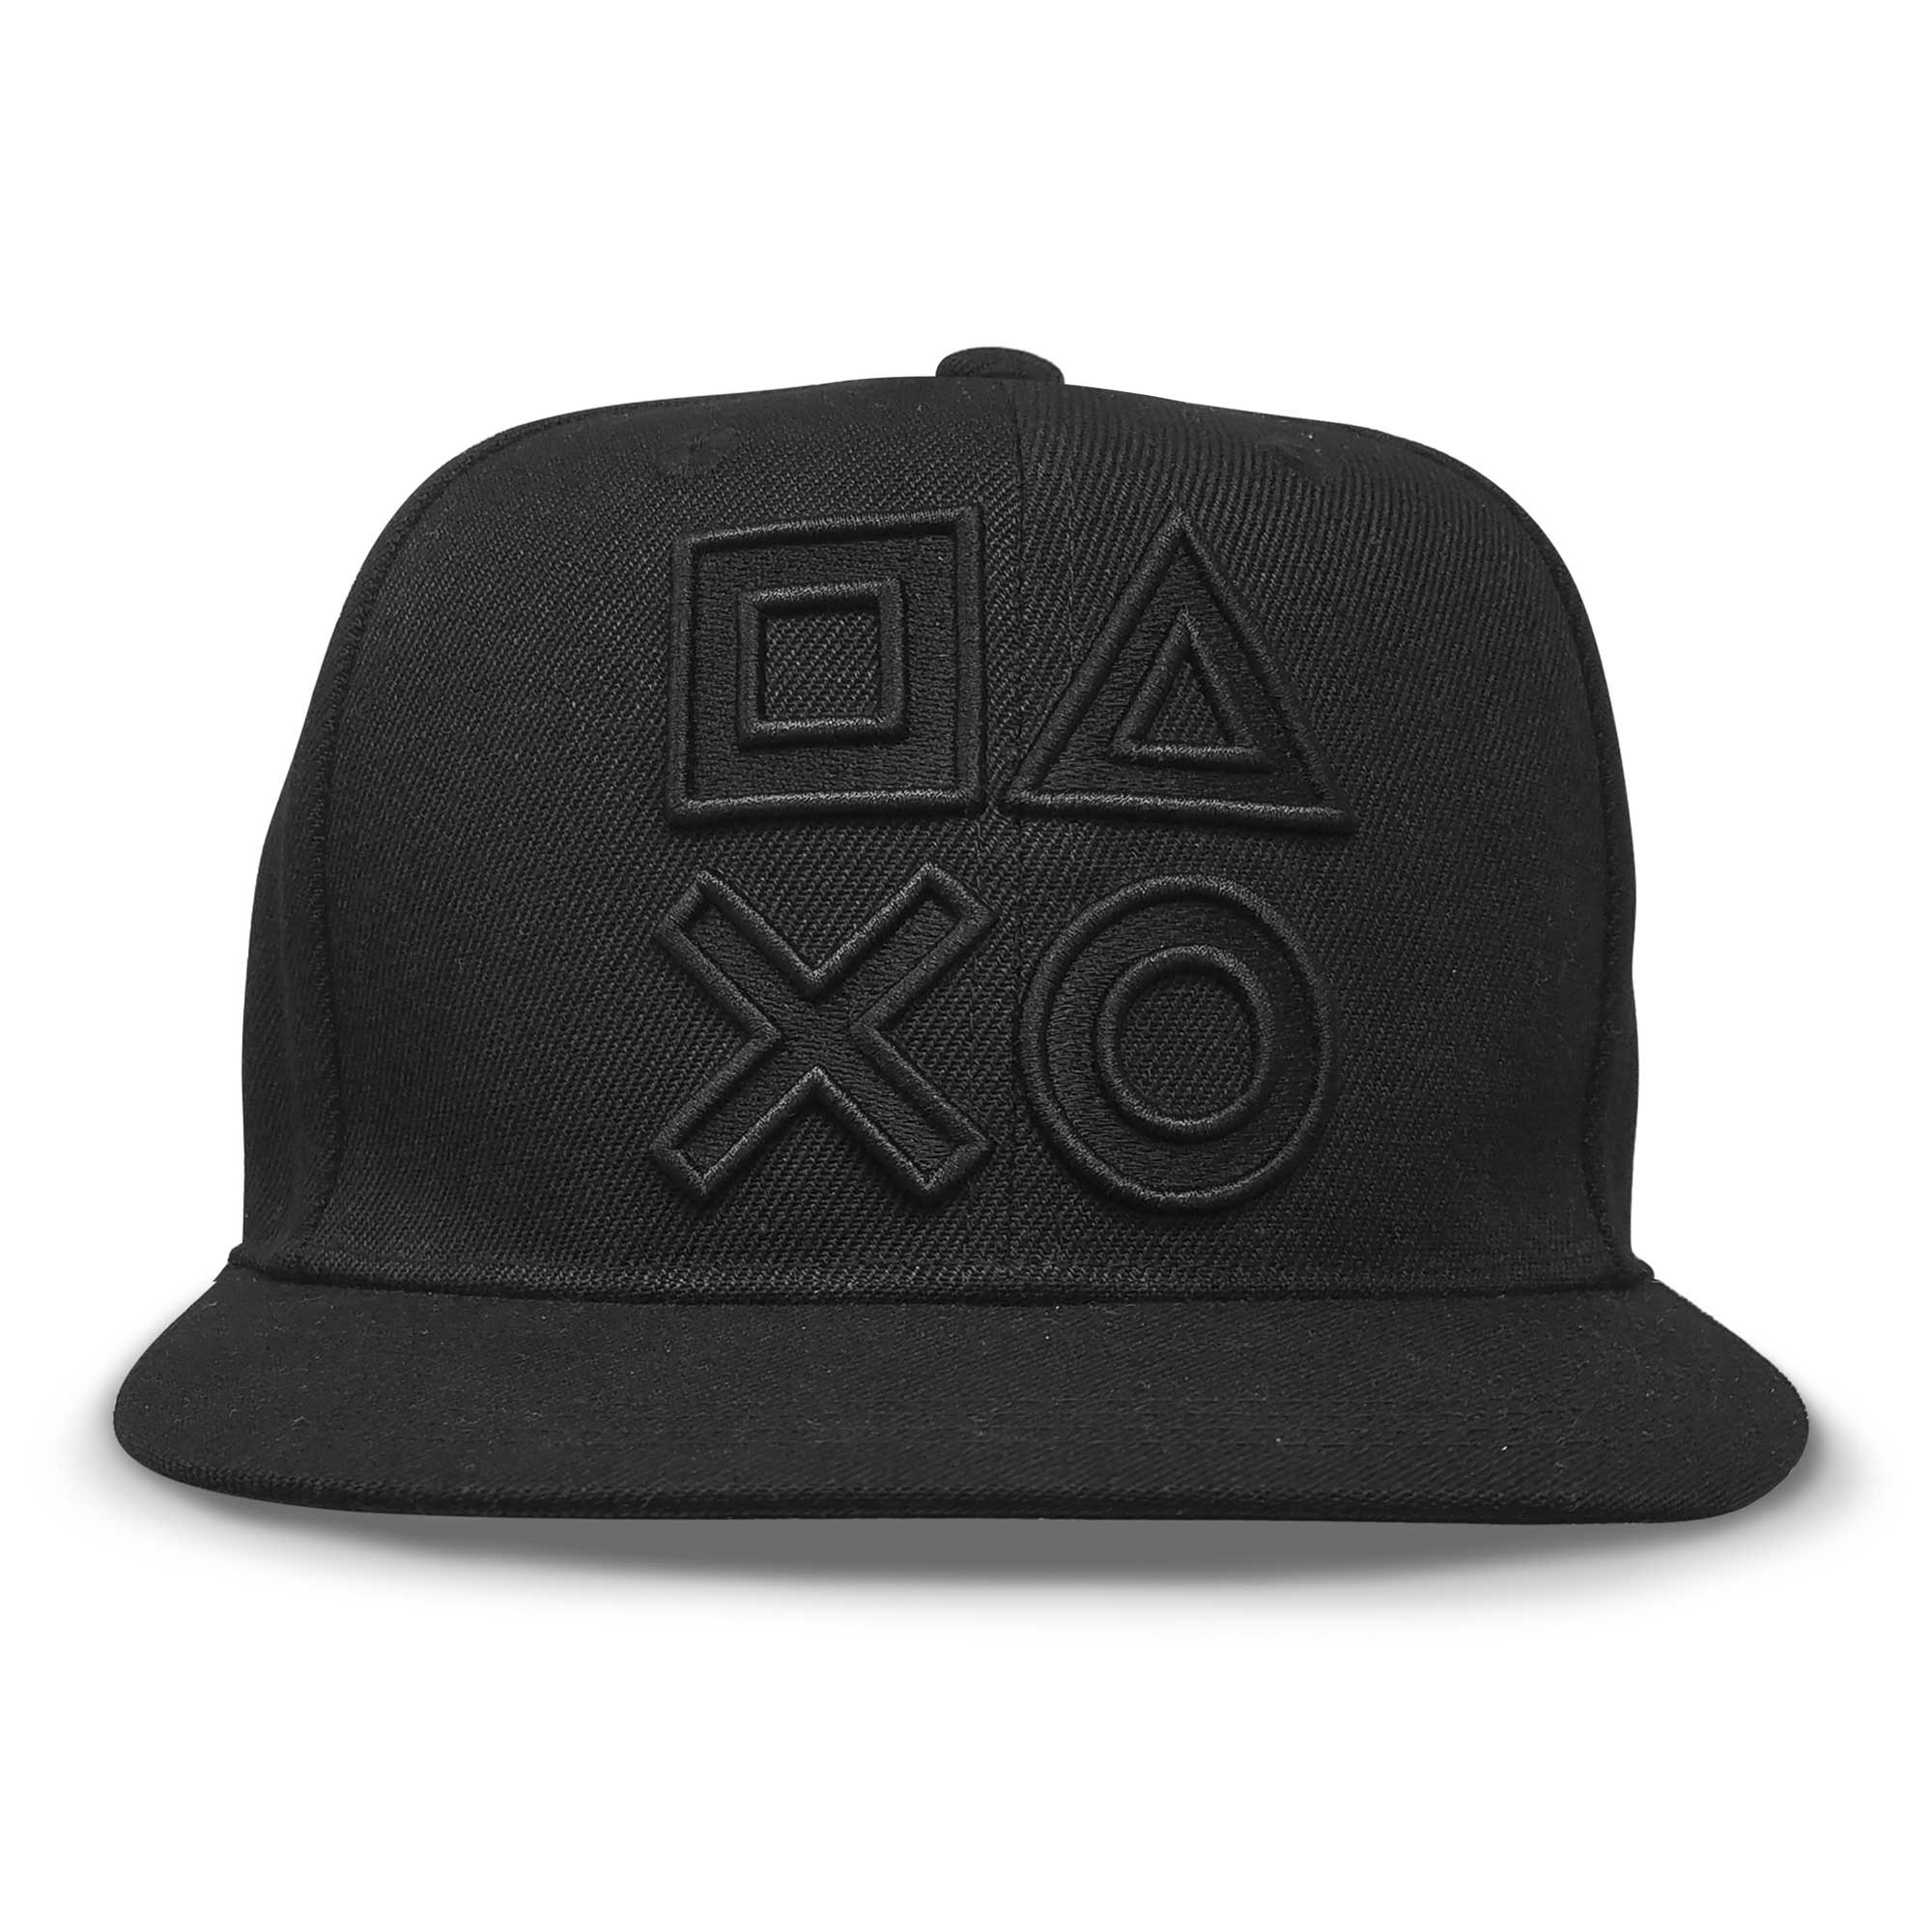 play station shapes hat image 1